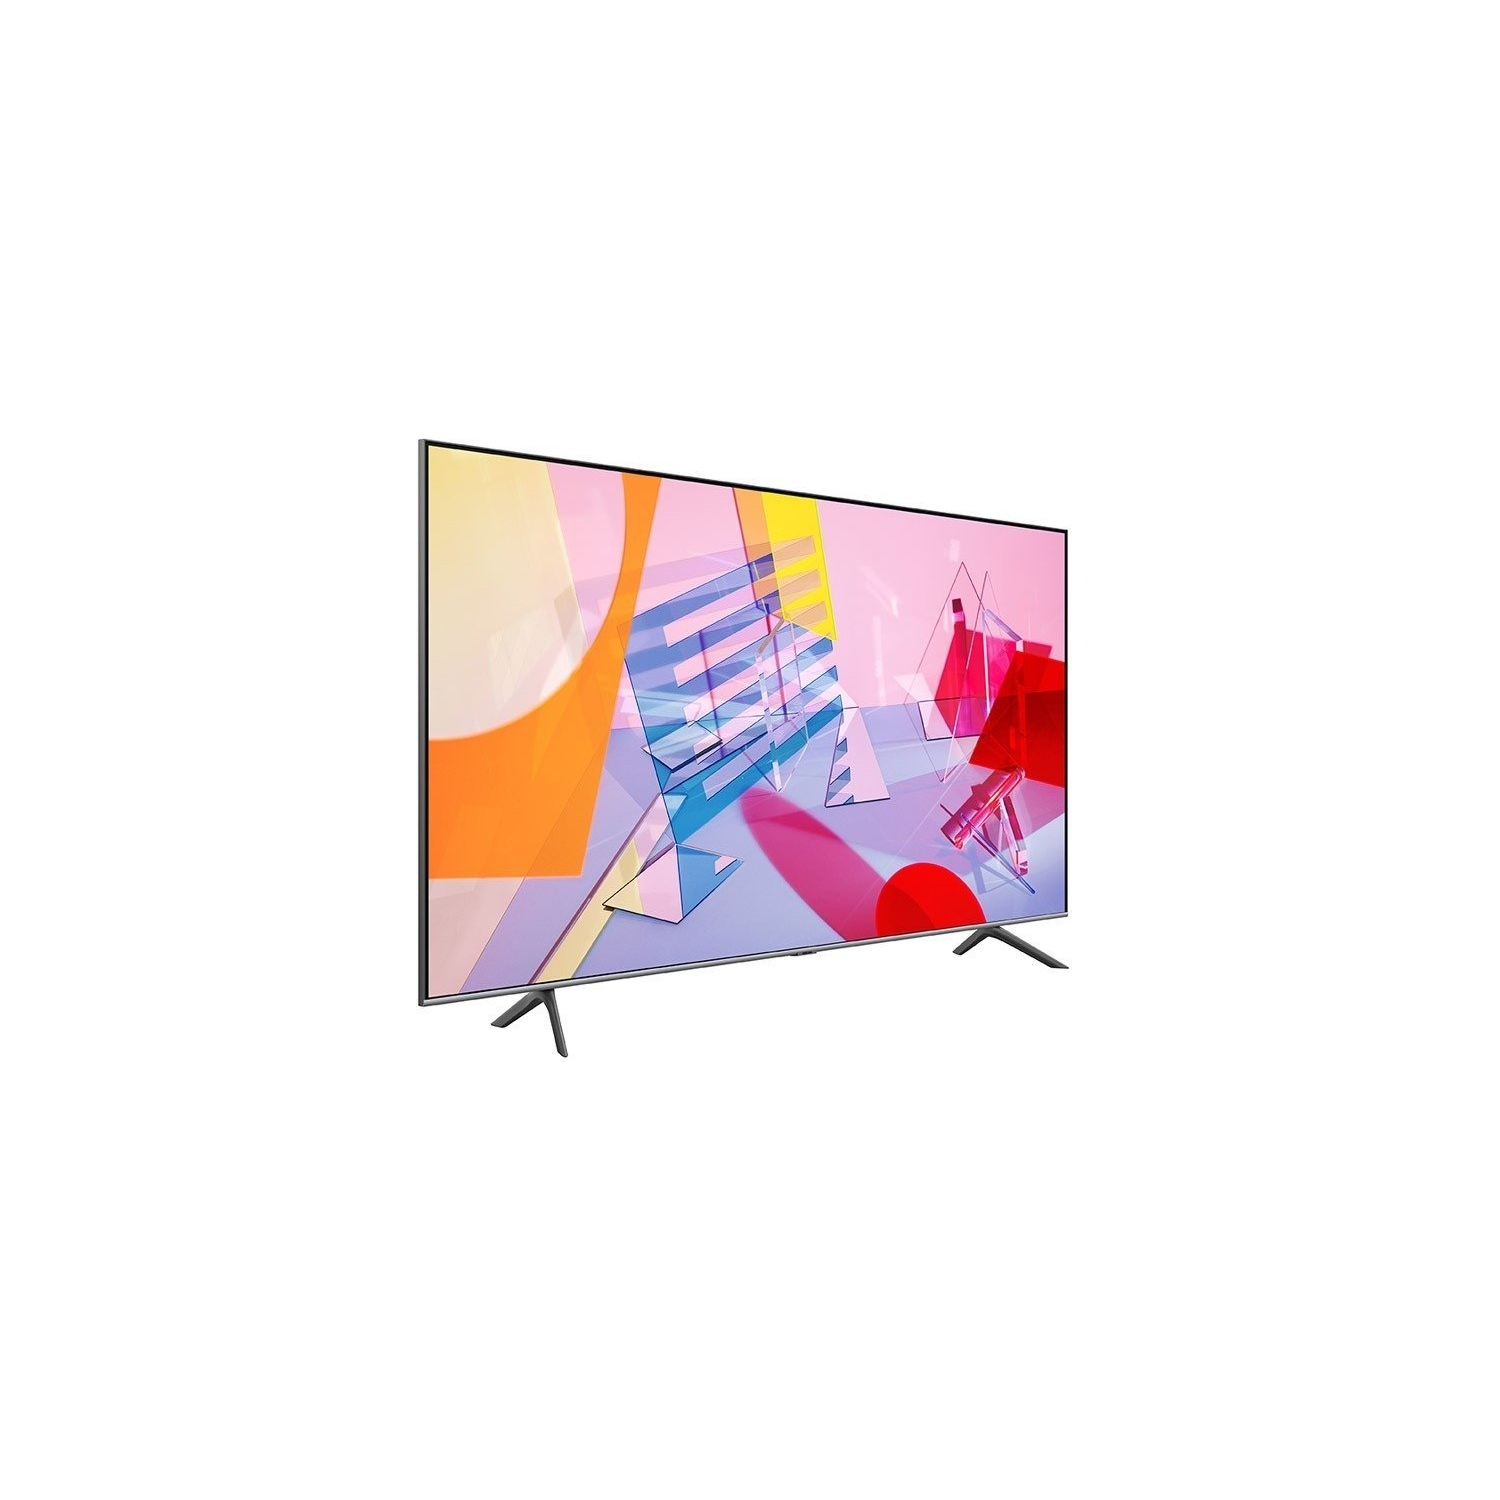 "Samsung QE65Q65T 65"" QLED 4K UHD Smart TV - 1"